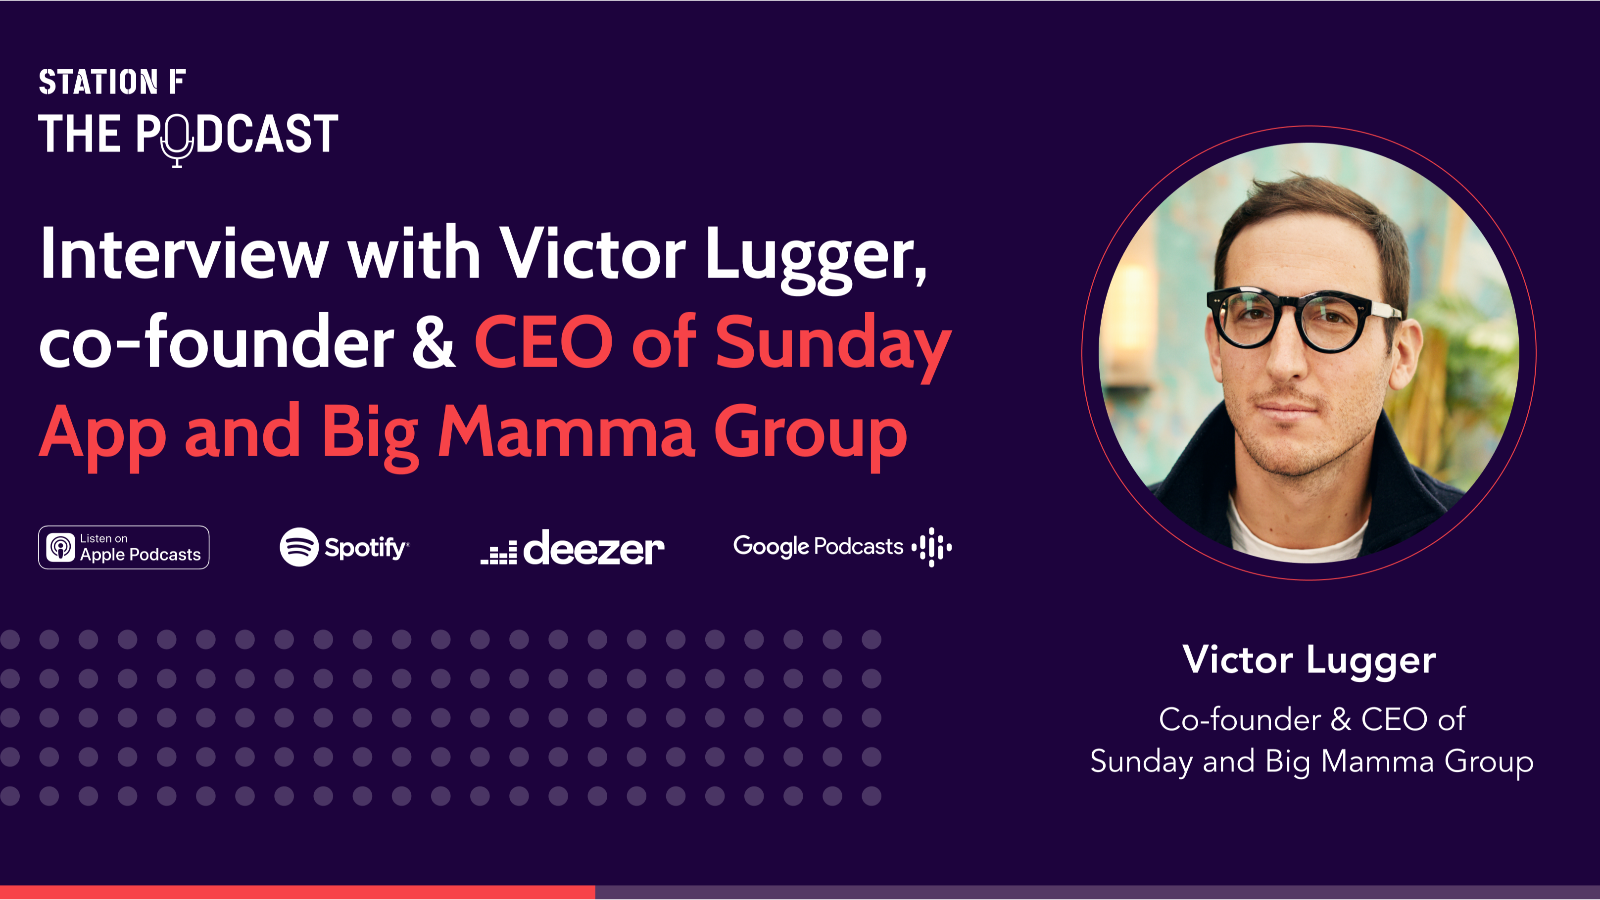 Thumbnail for news article called Interview with Victor Lugger, co-founder & CEO of Big Mamma Group and Sunday App